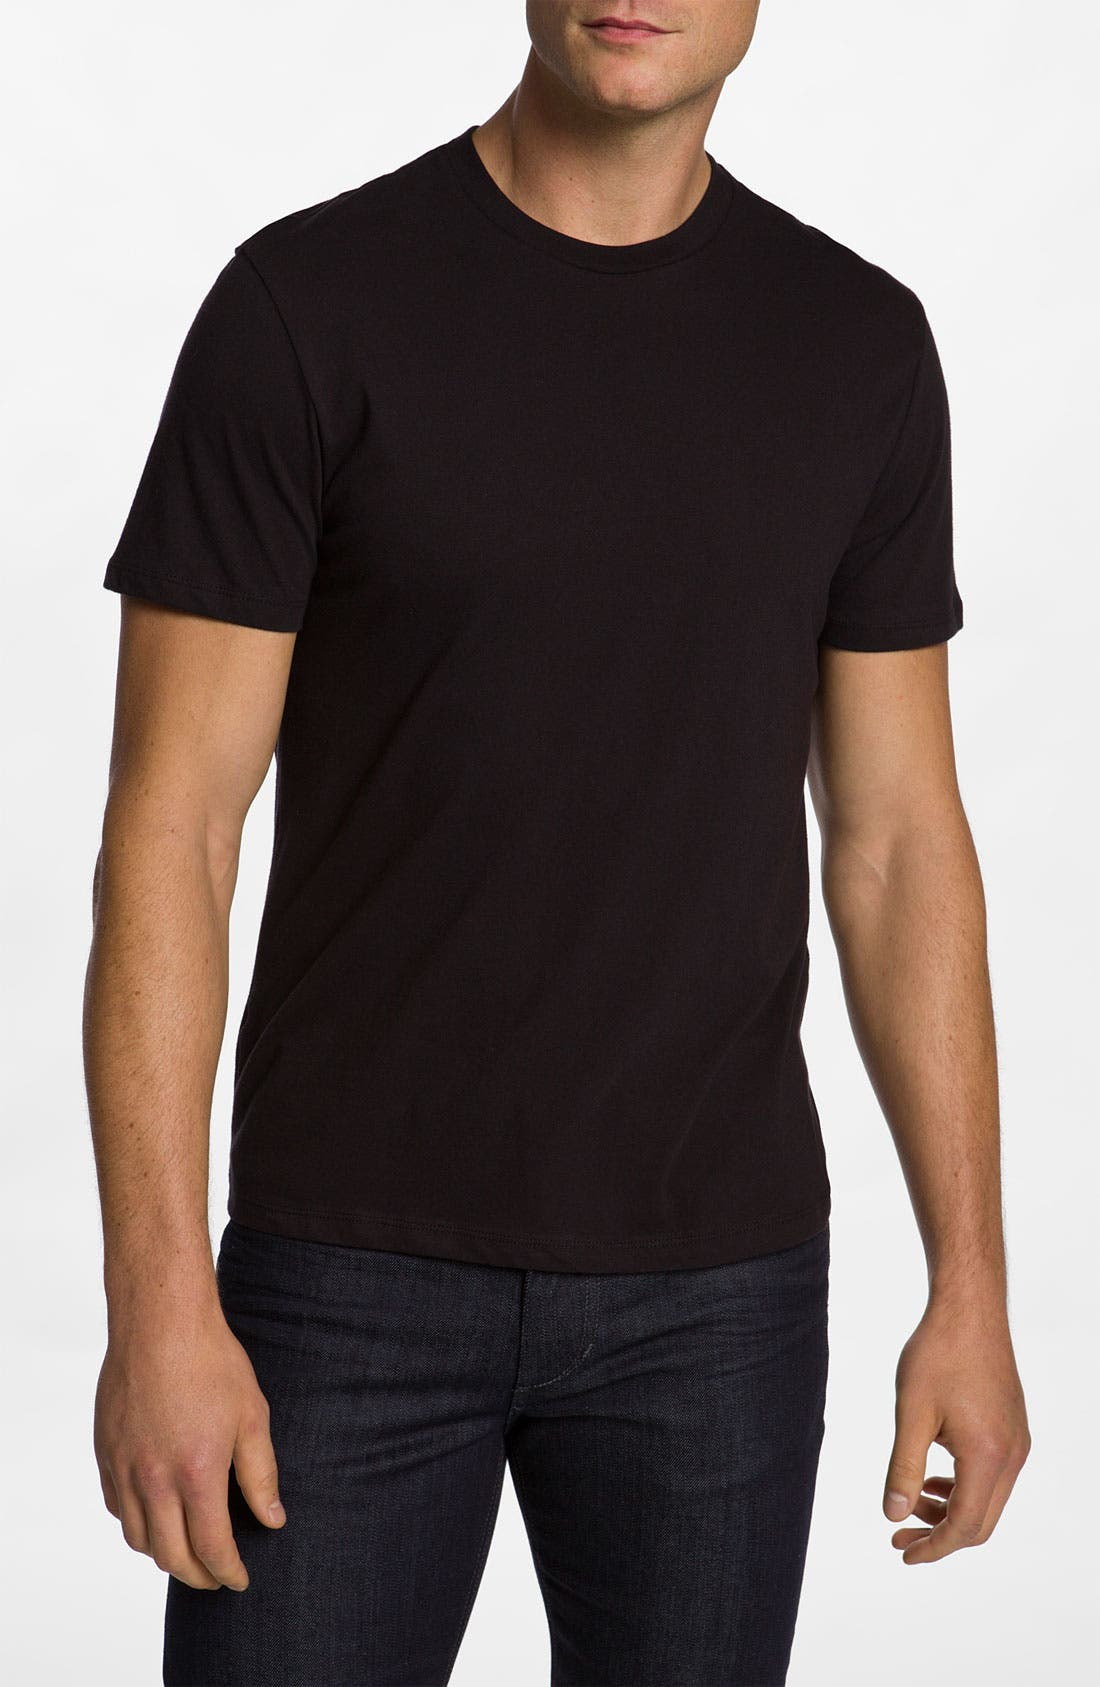 The Rail Slim Fit Crewneck T-Shirt (2 for $30)